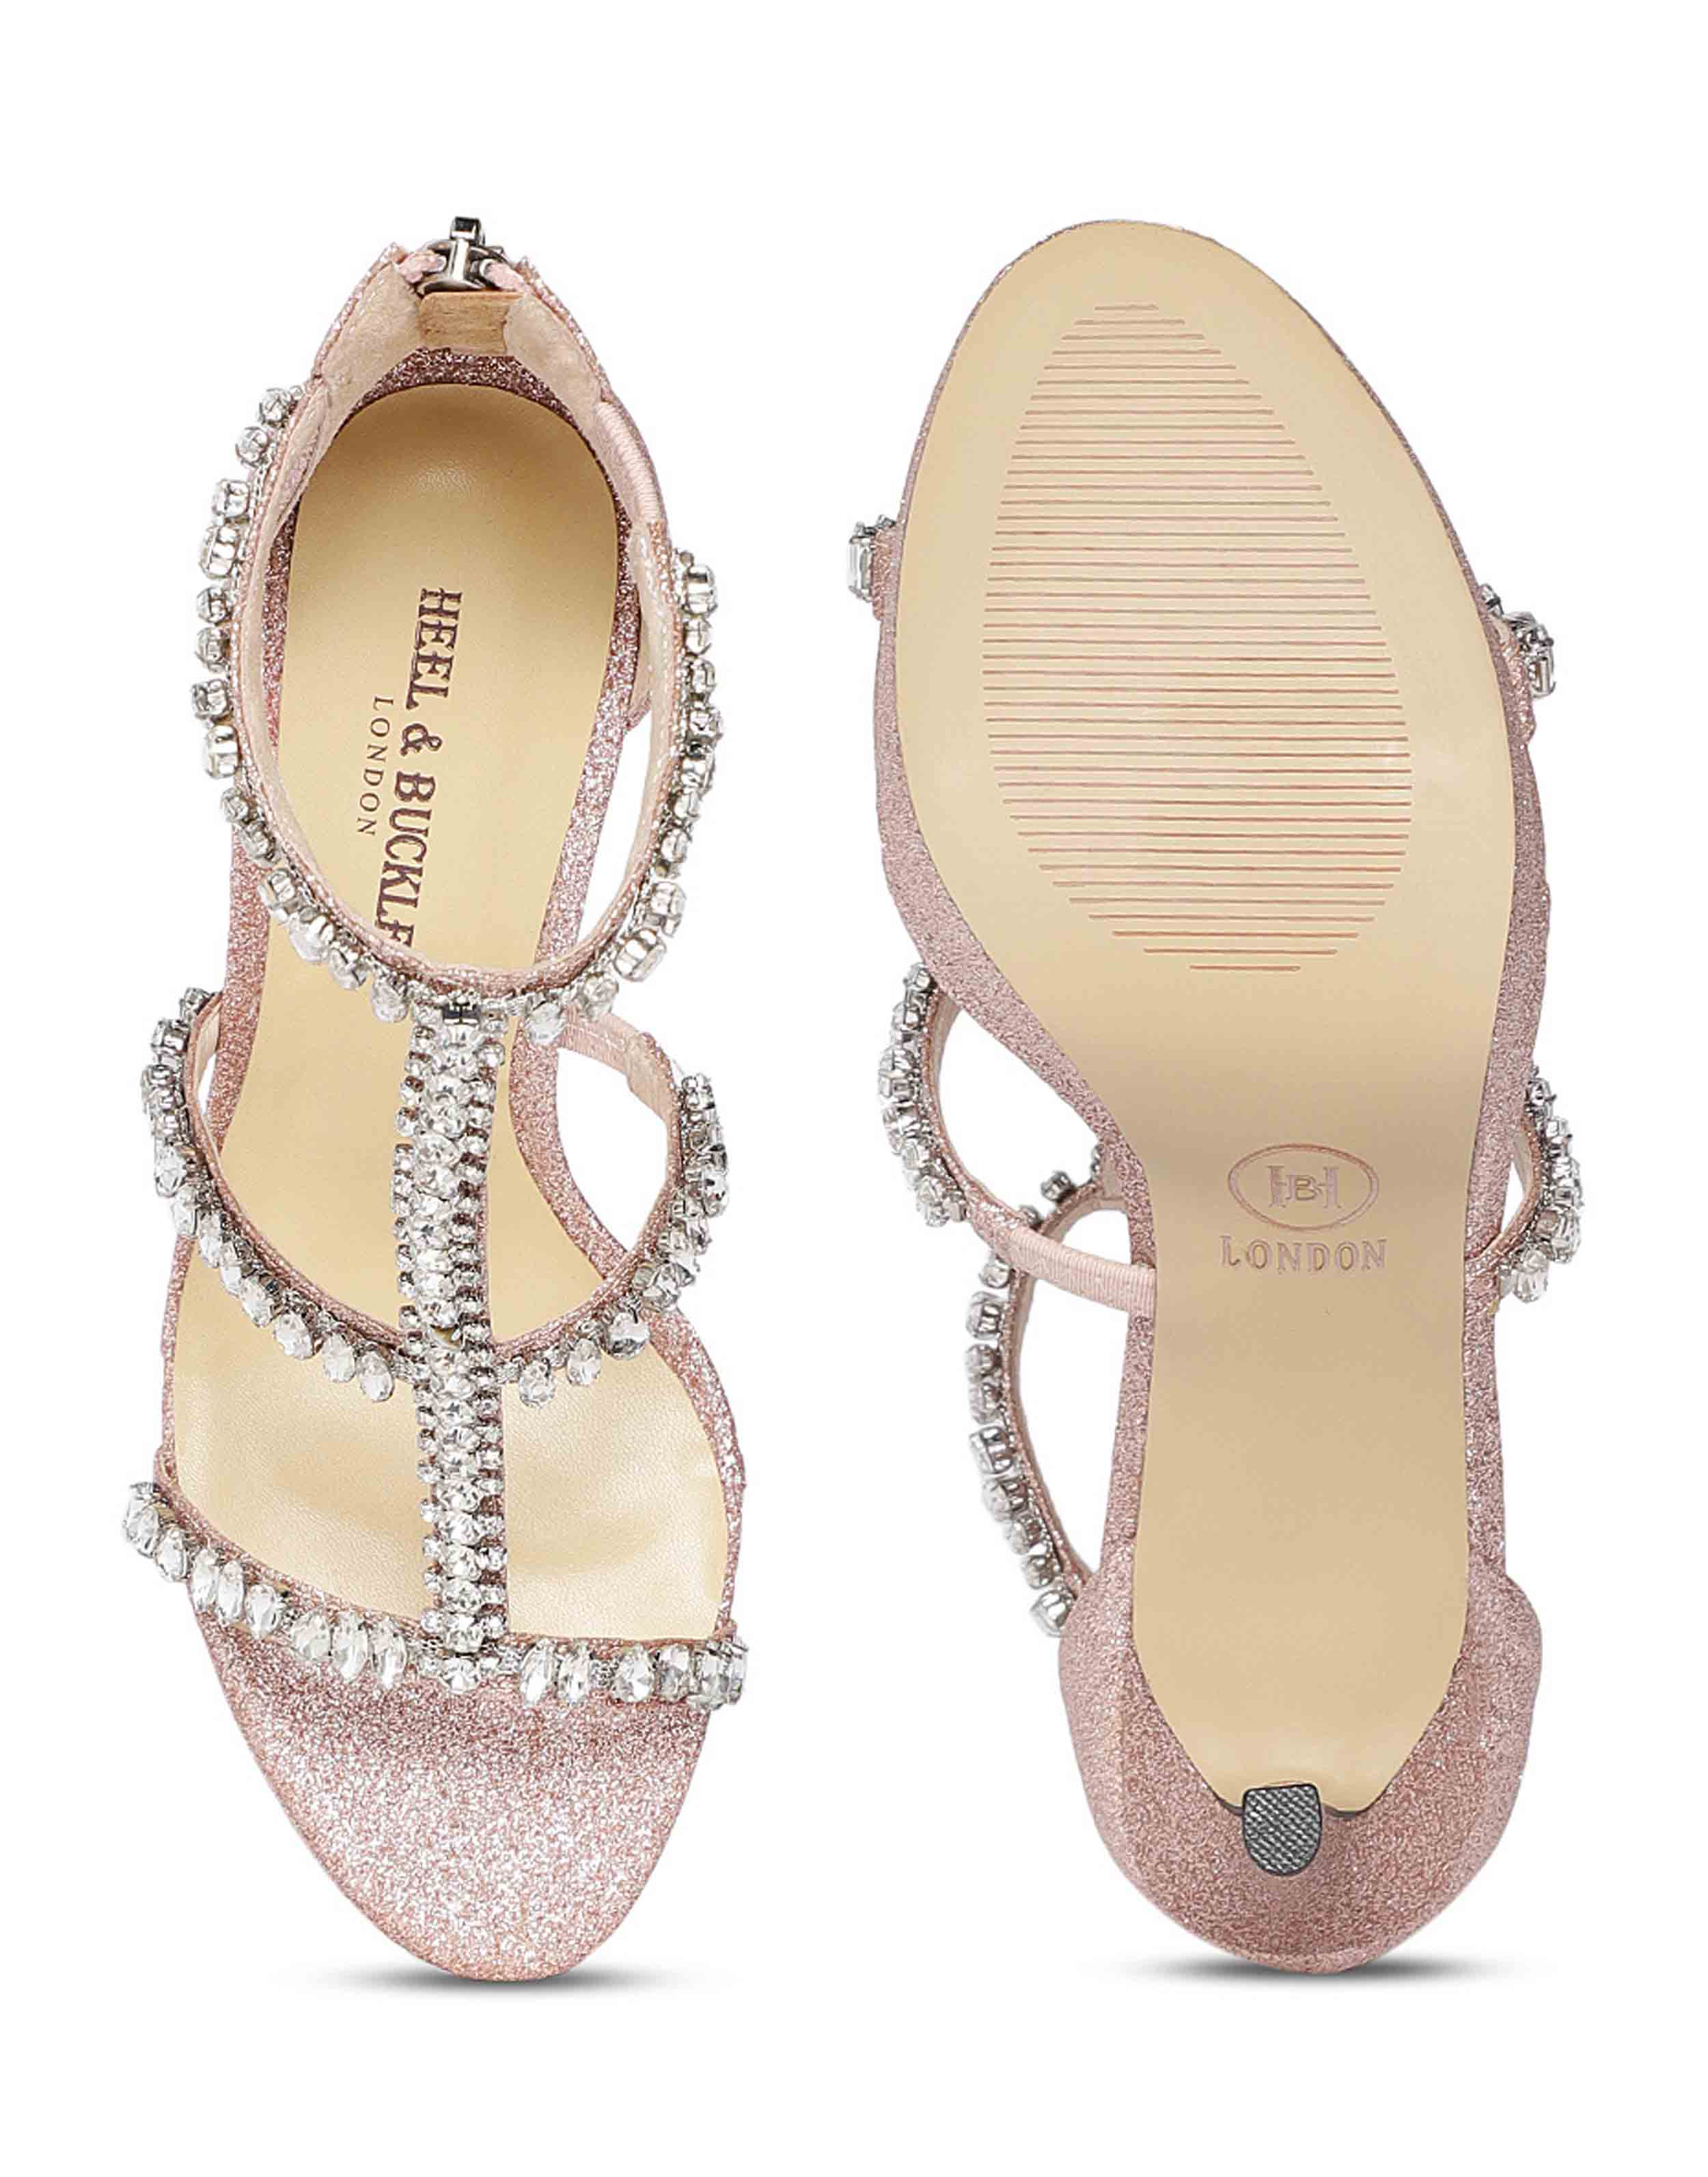 Shimmery Sandals4